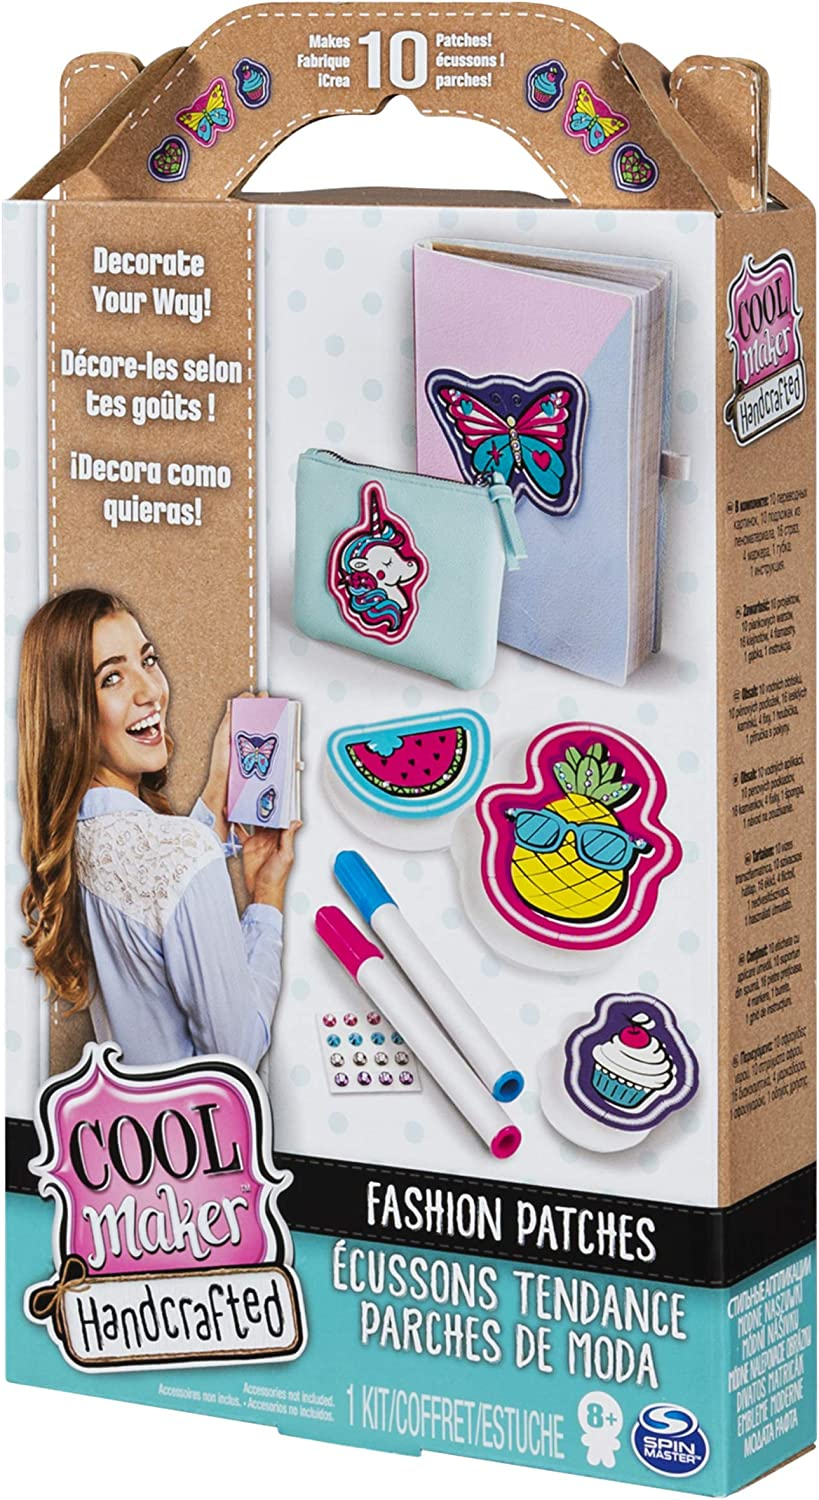 Cool Maker Makes 10 Patches and Includes 4 Makers Handcrafted Fashion Patches Activity Kit 16 Gems